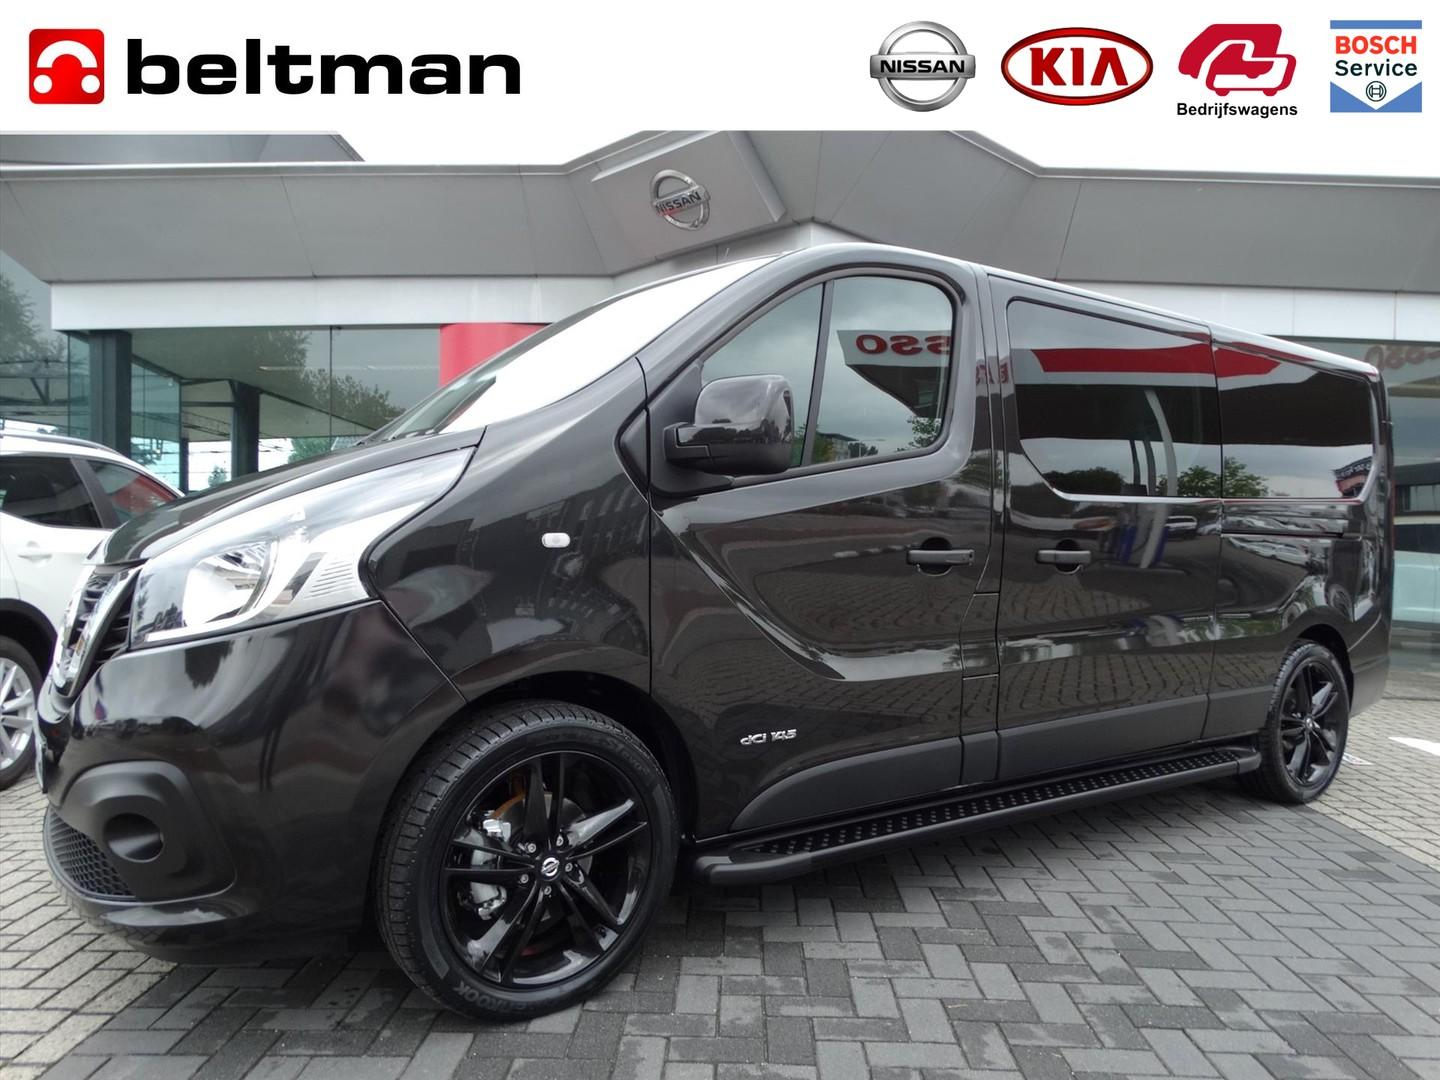 Nissan Nv300 1.6 dci 145 l2h1 optima black edition luxe dubbele cabine netto deal!